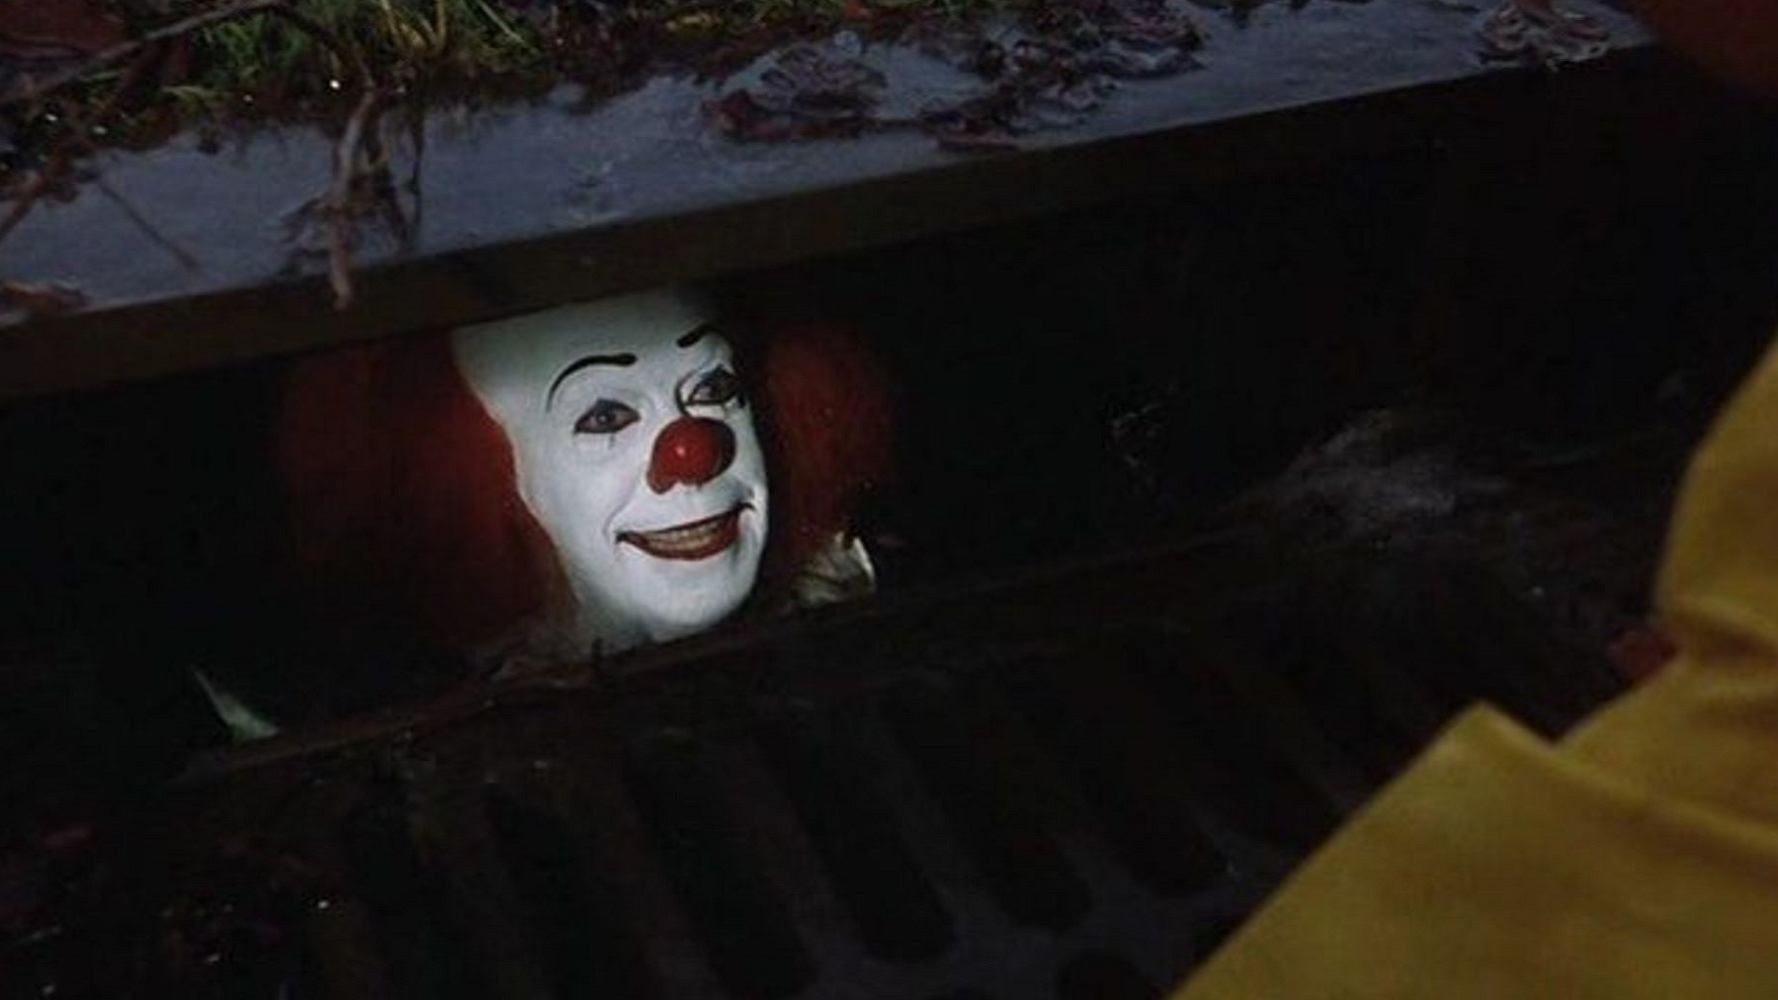 Stephen-Kings-IT-Pennywise-down-the-storm-drain.jpg